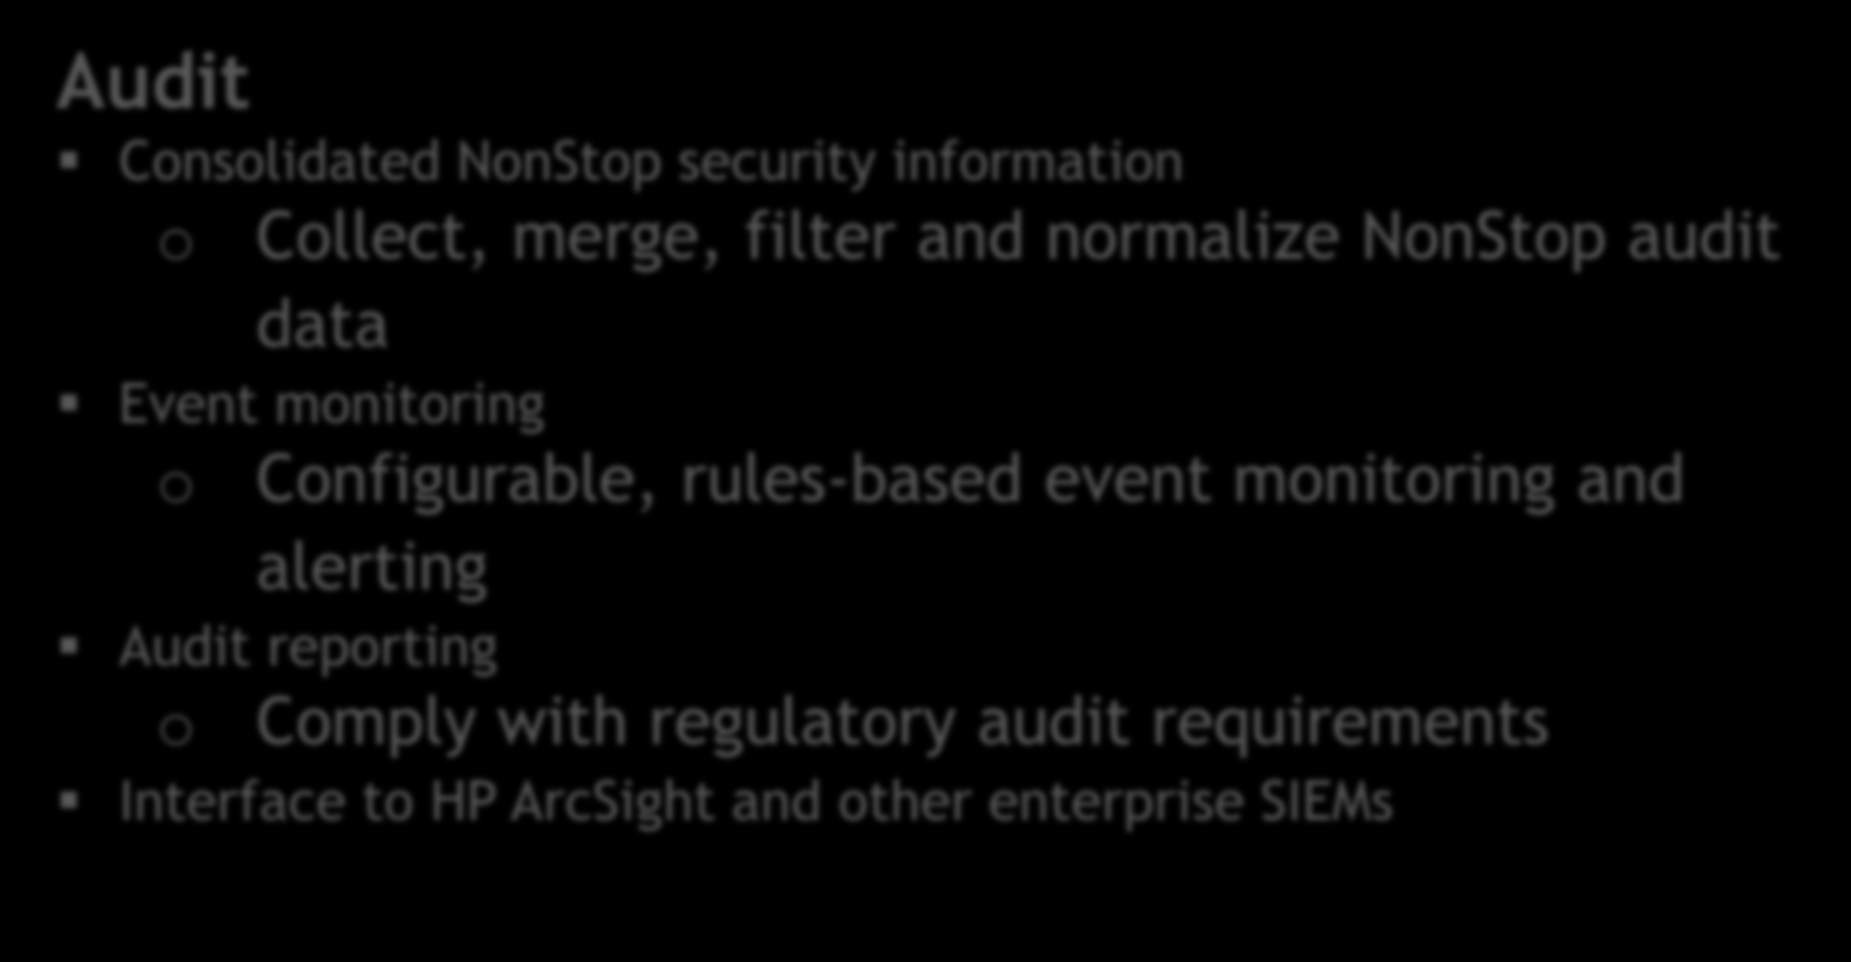 Audit Consolidated NonStop security information o Collect, merge, filter and normalize NonStop audit data Audit Event monitoring Consolidated Security Data Event Monitoring o Audit